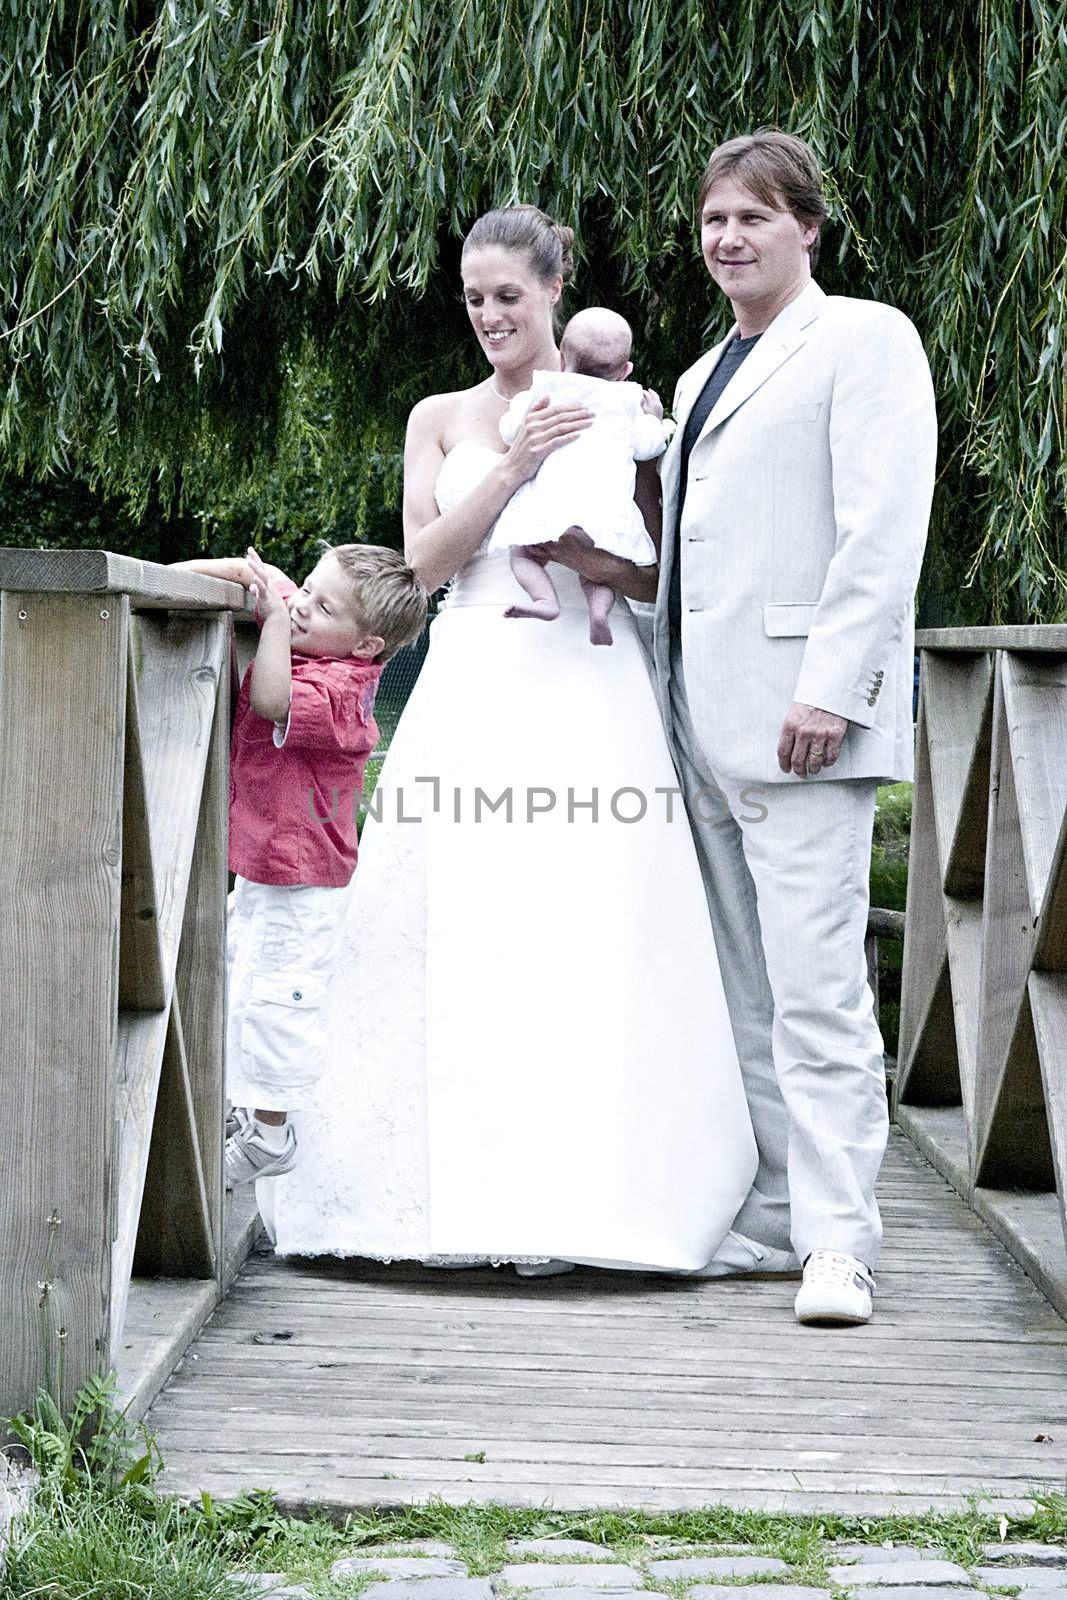 pictures shooten on a wedding day from a beautiful couple and child